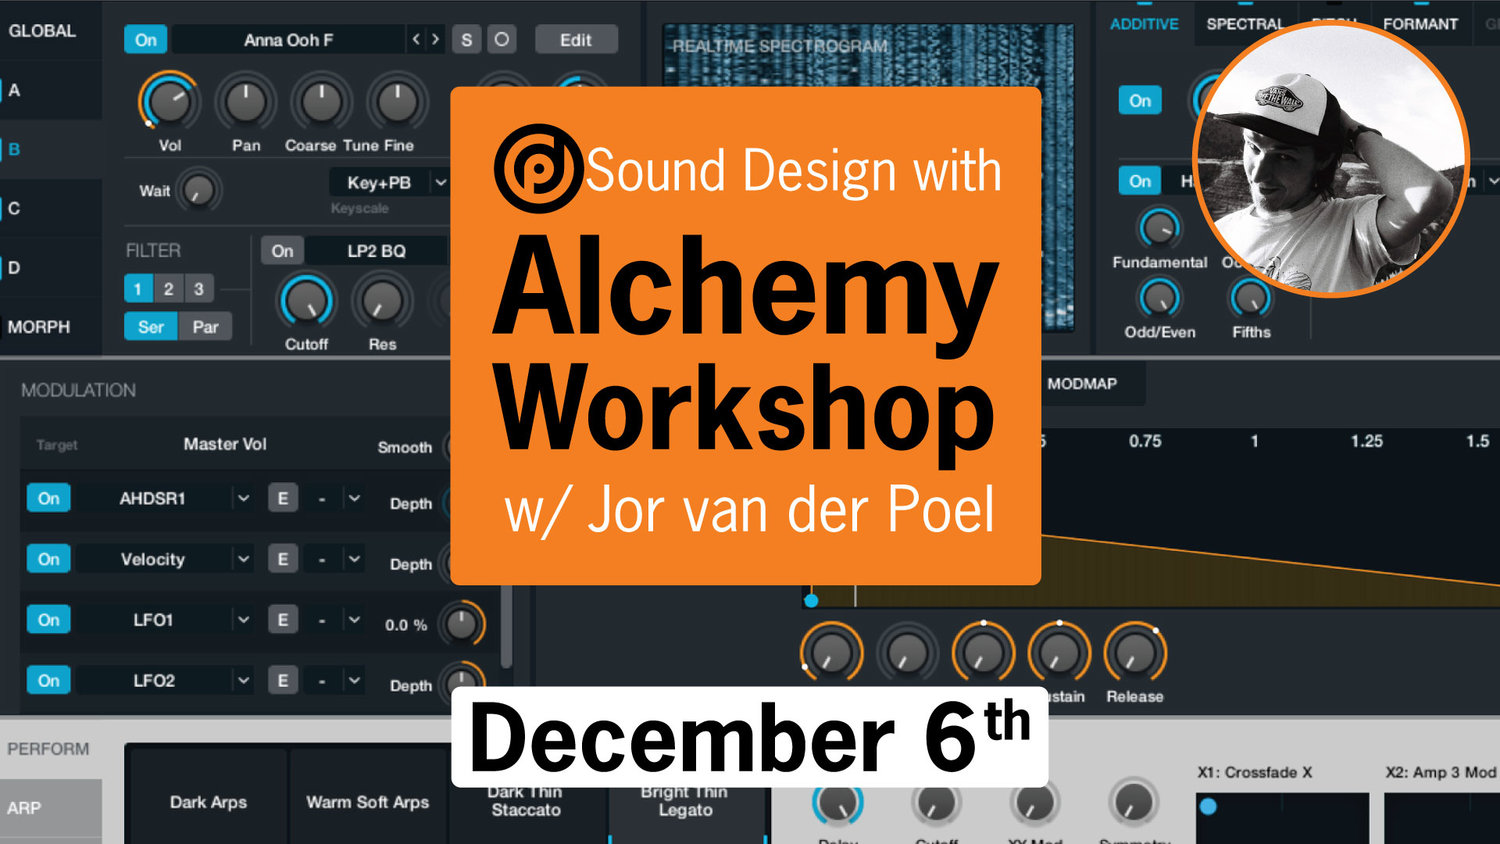 Sound Design in Alchemy Workshop